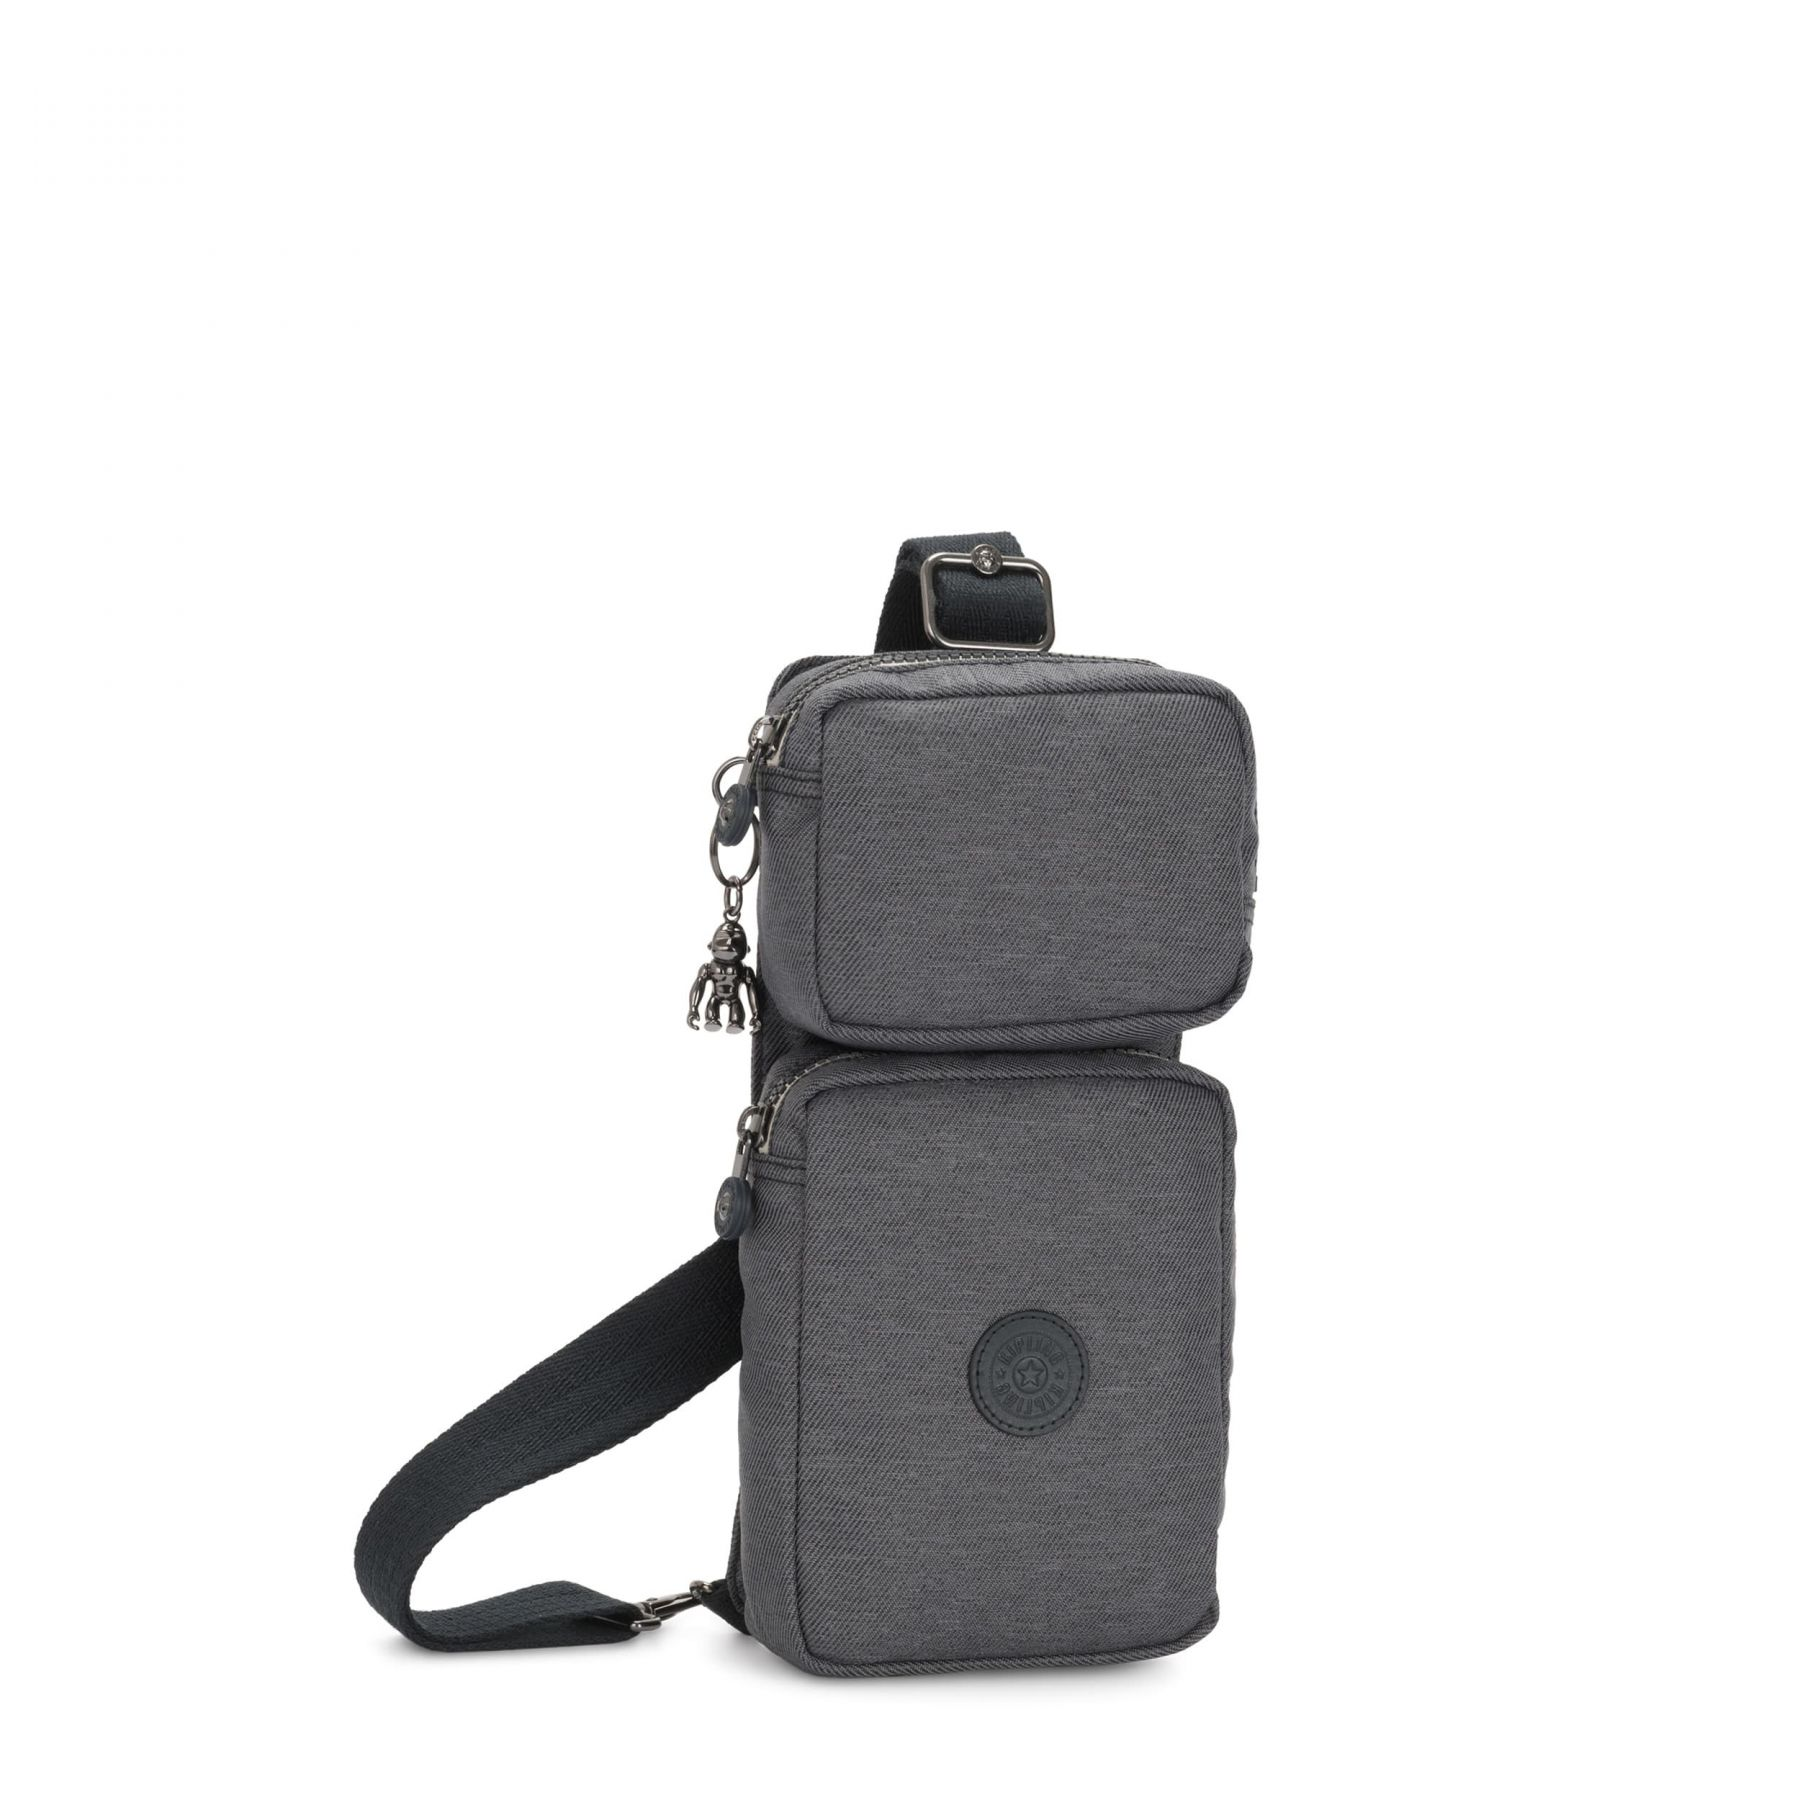 OVANDO Latest Shoulder Bags by Kipling - view 4